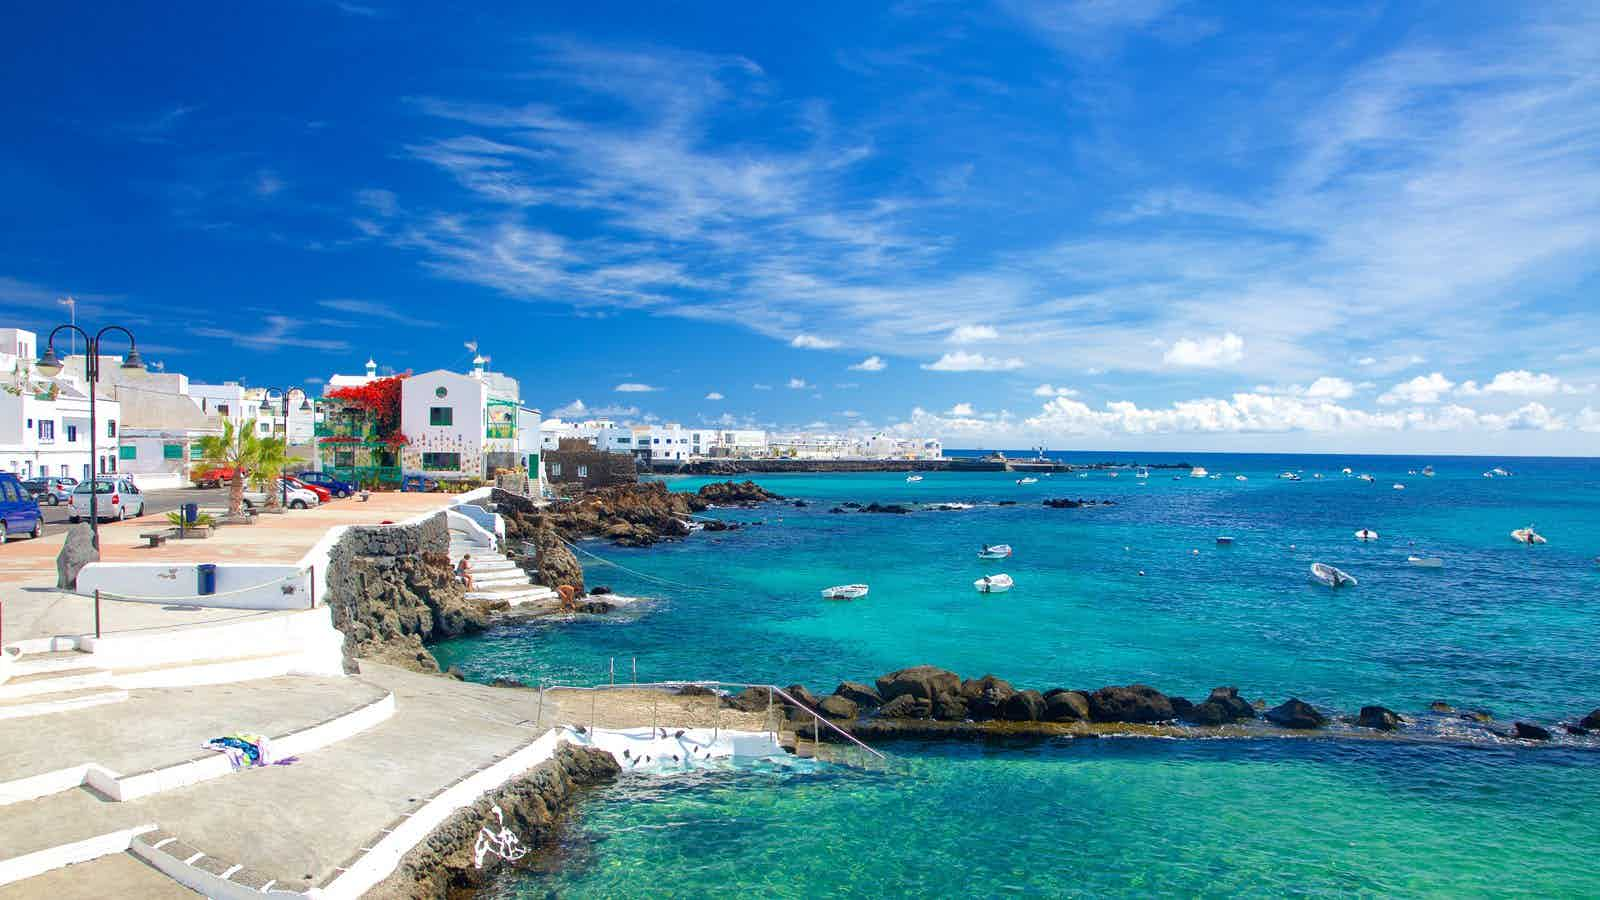 The Best Places to Go in Europe in February